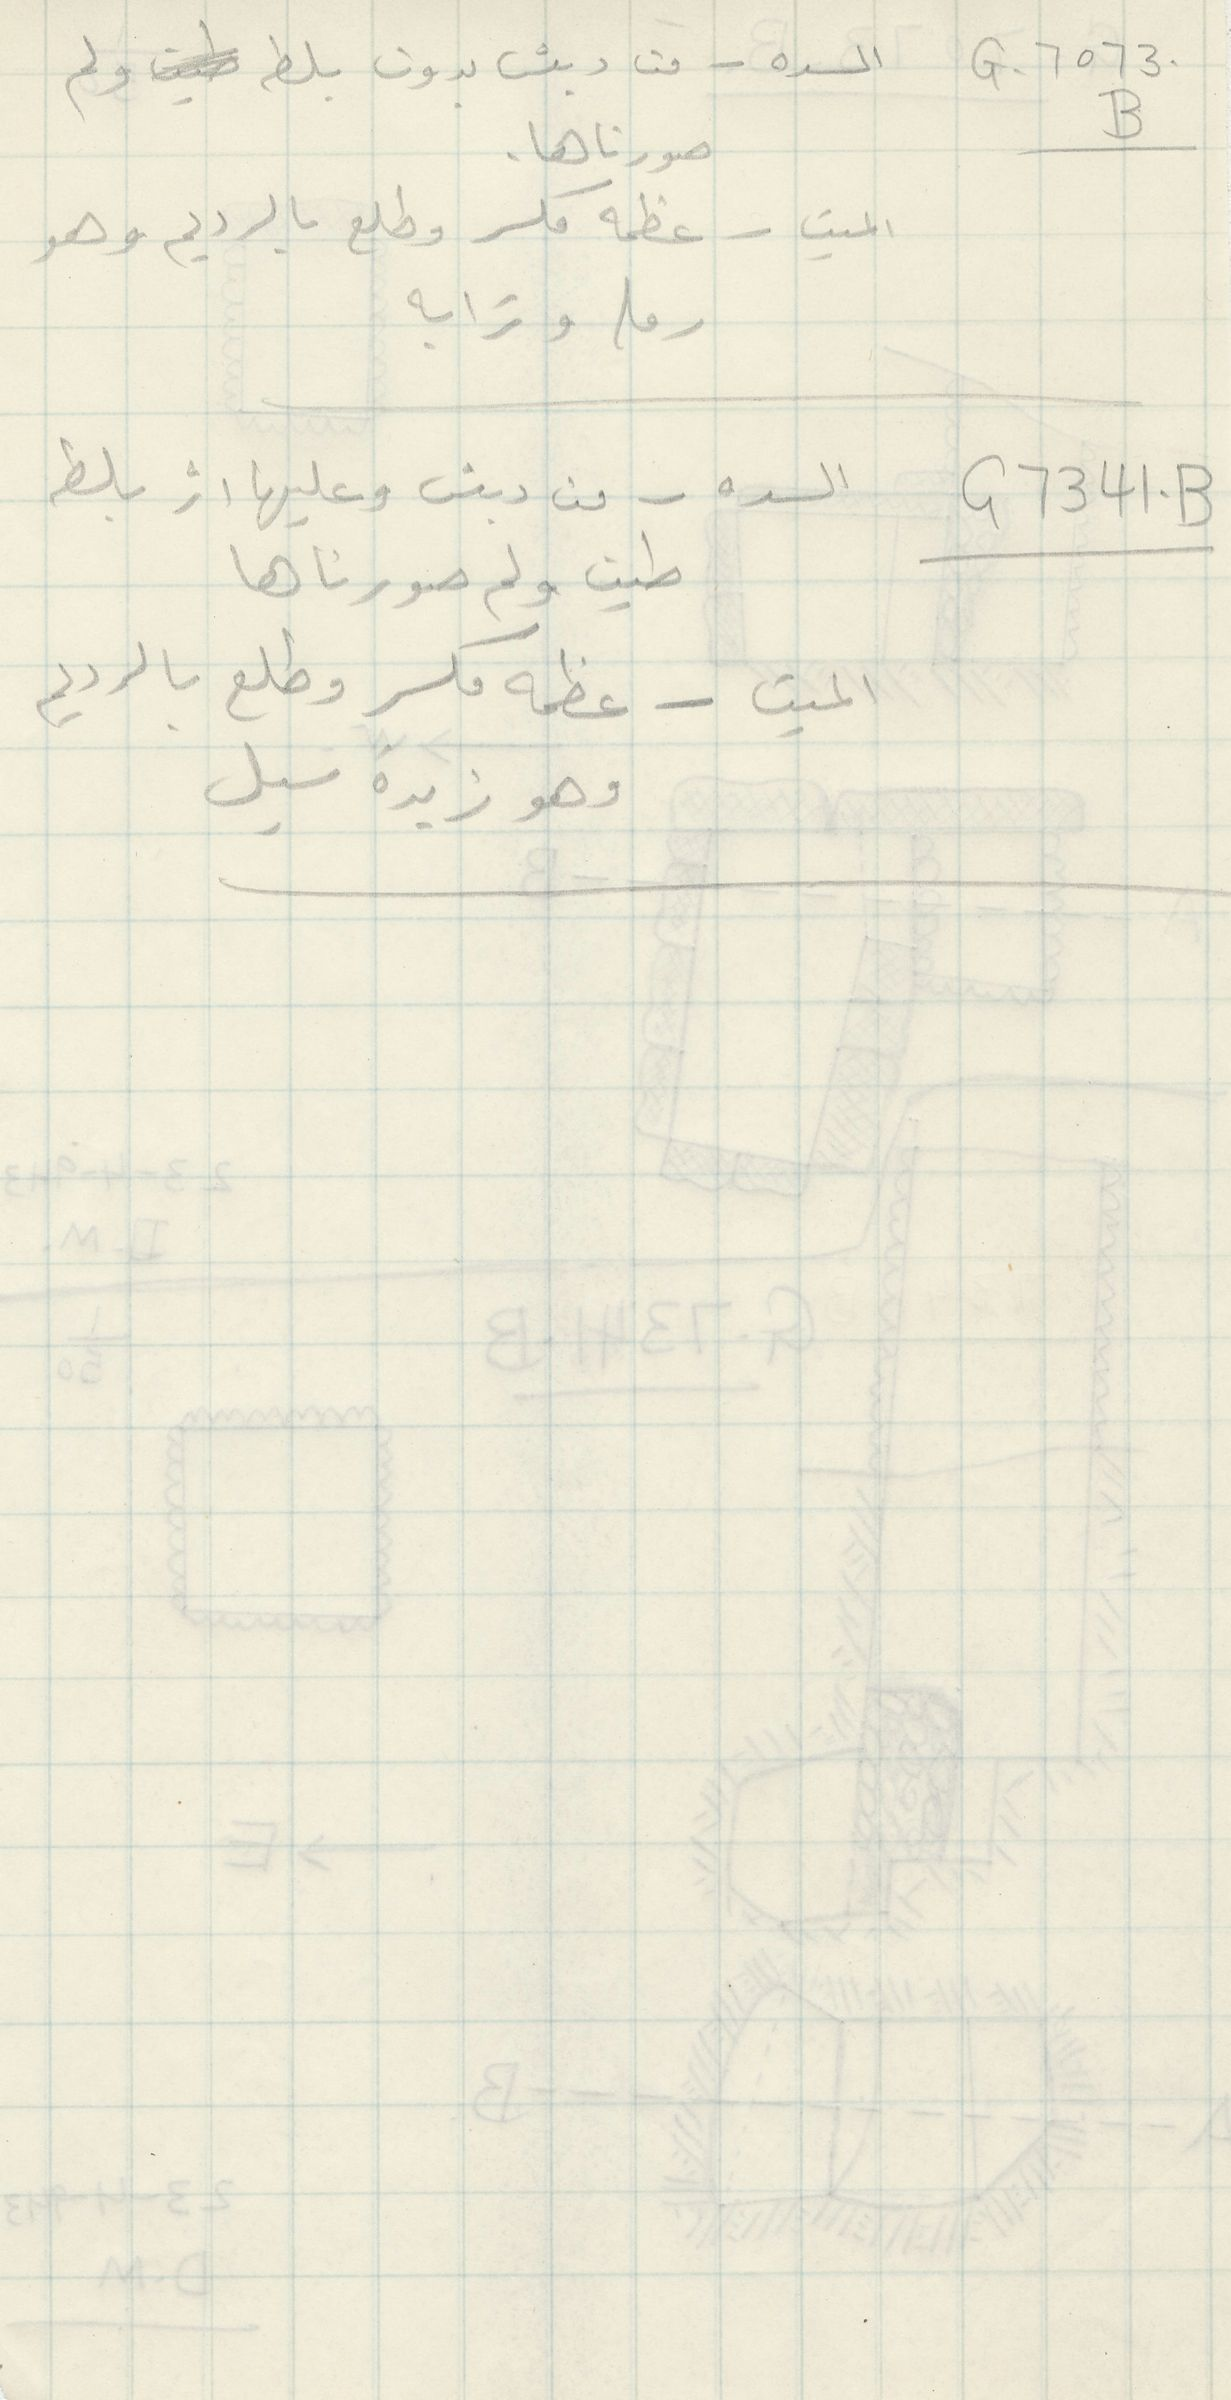 Notes: G 7073, Shaft B, notes (in Arabic) & G 7341, Shaft B, notes (in Arabic)